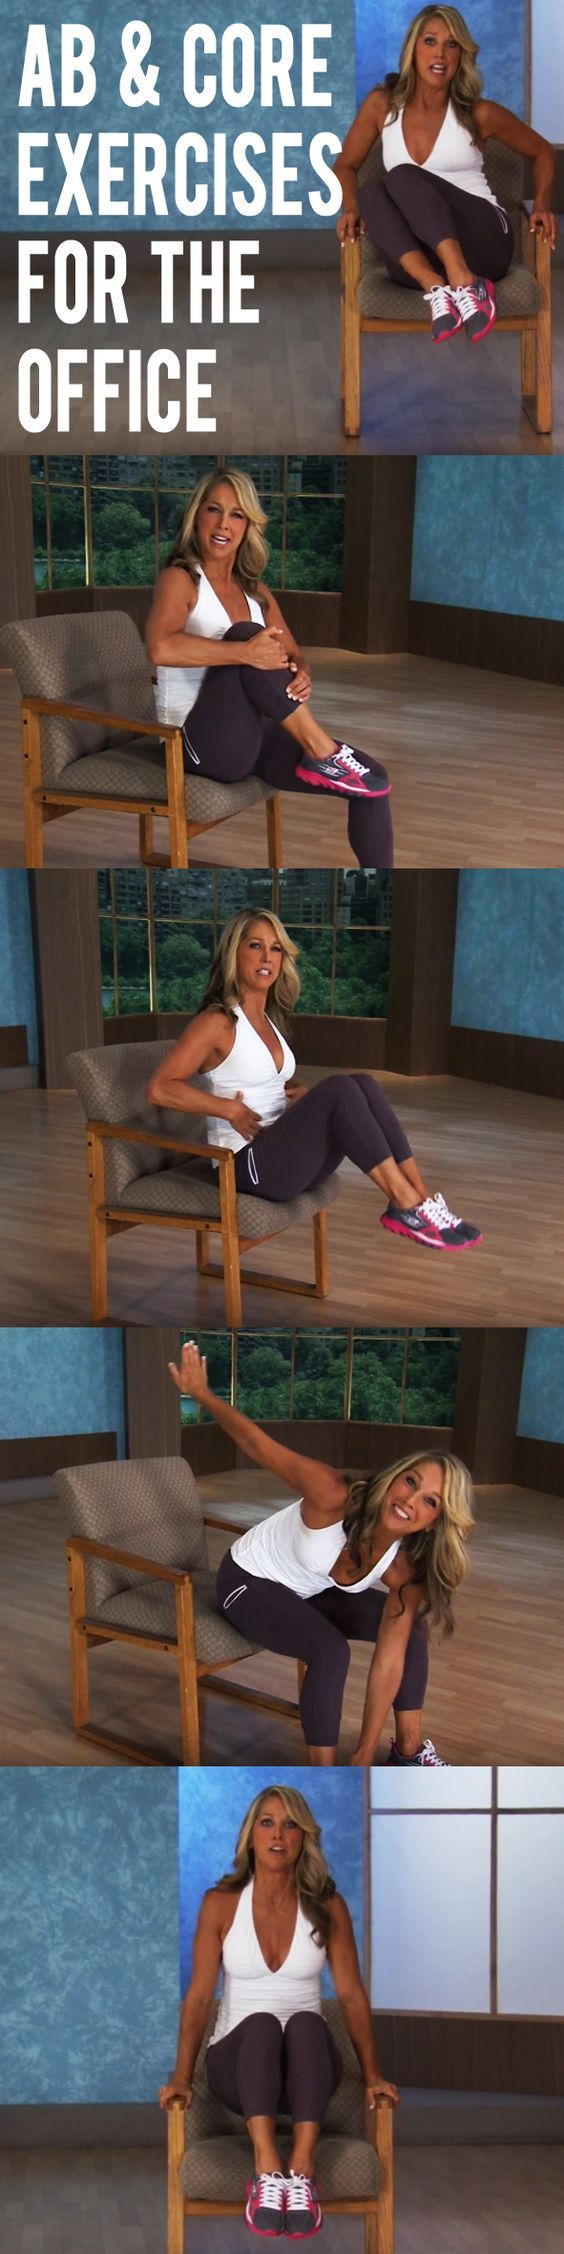 Ab & Core Exercises for the Office. =)